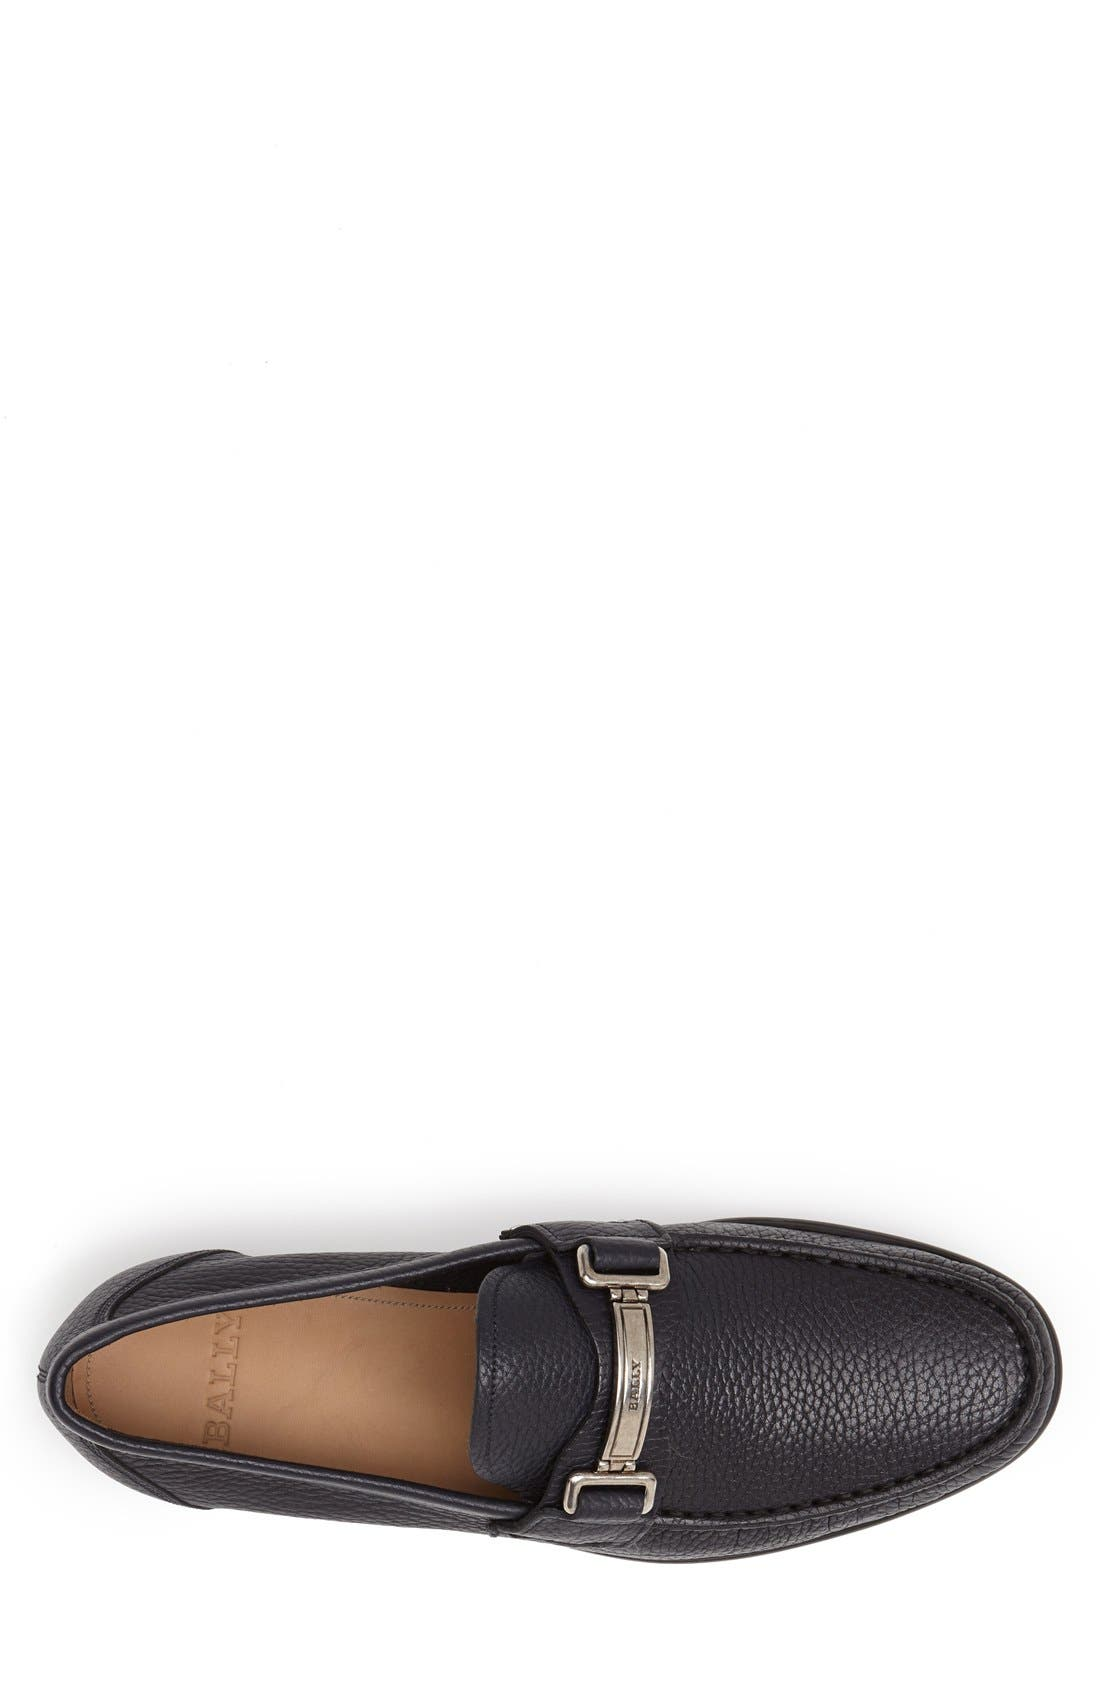 Alternate Image 3  - Bally 'Corton' Bit Loafer (Men)